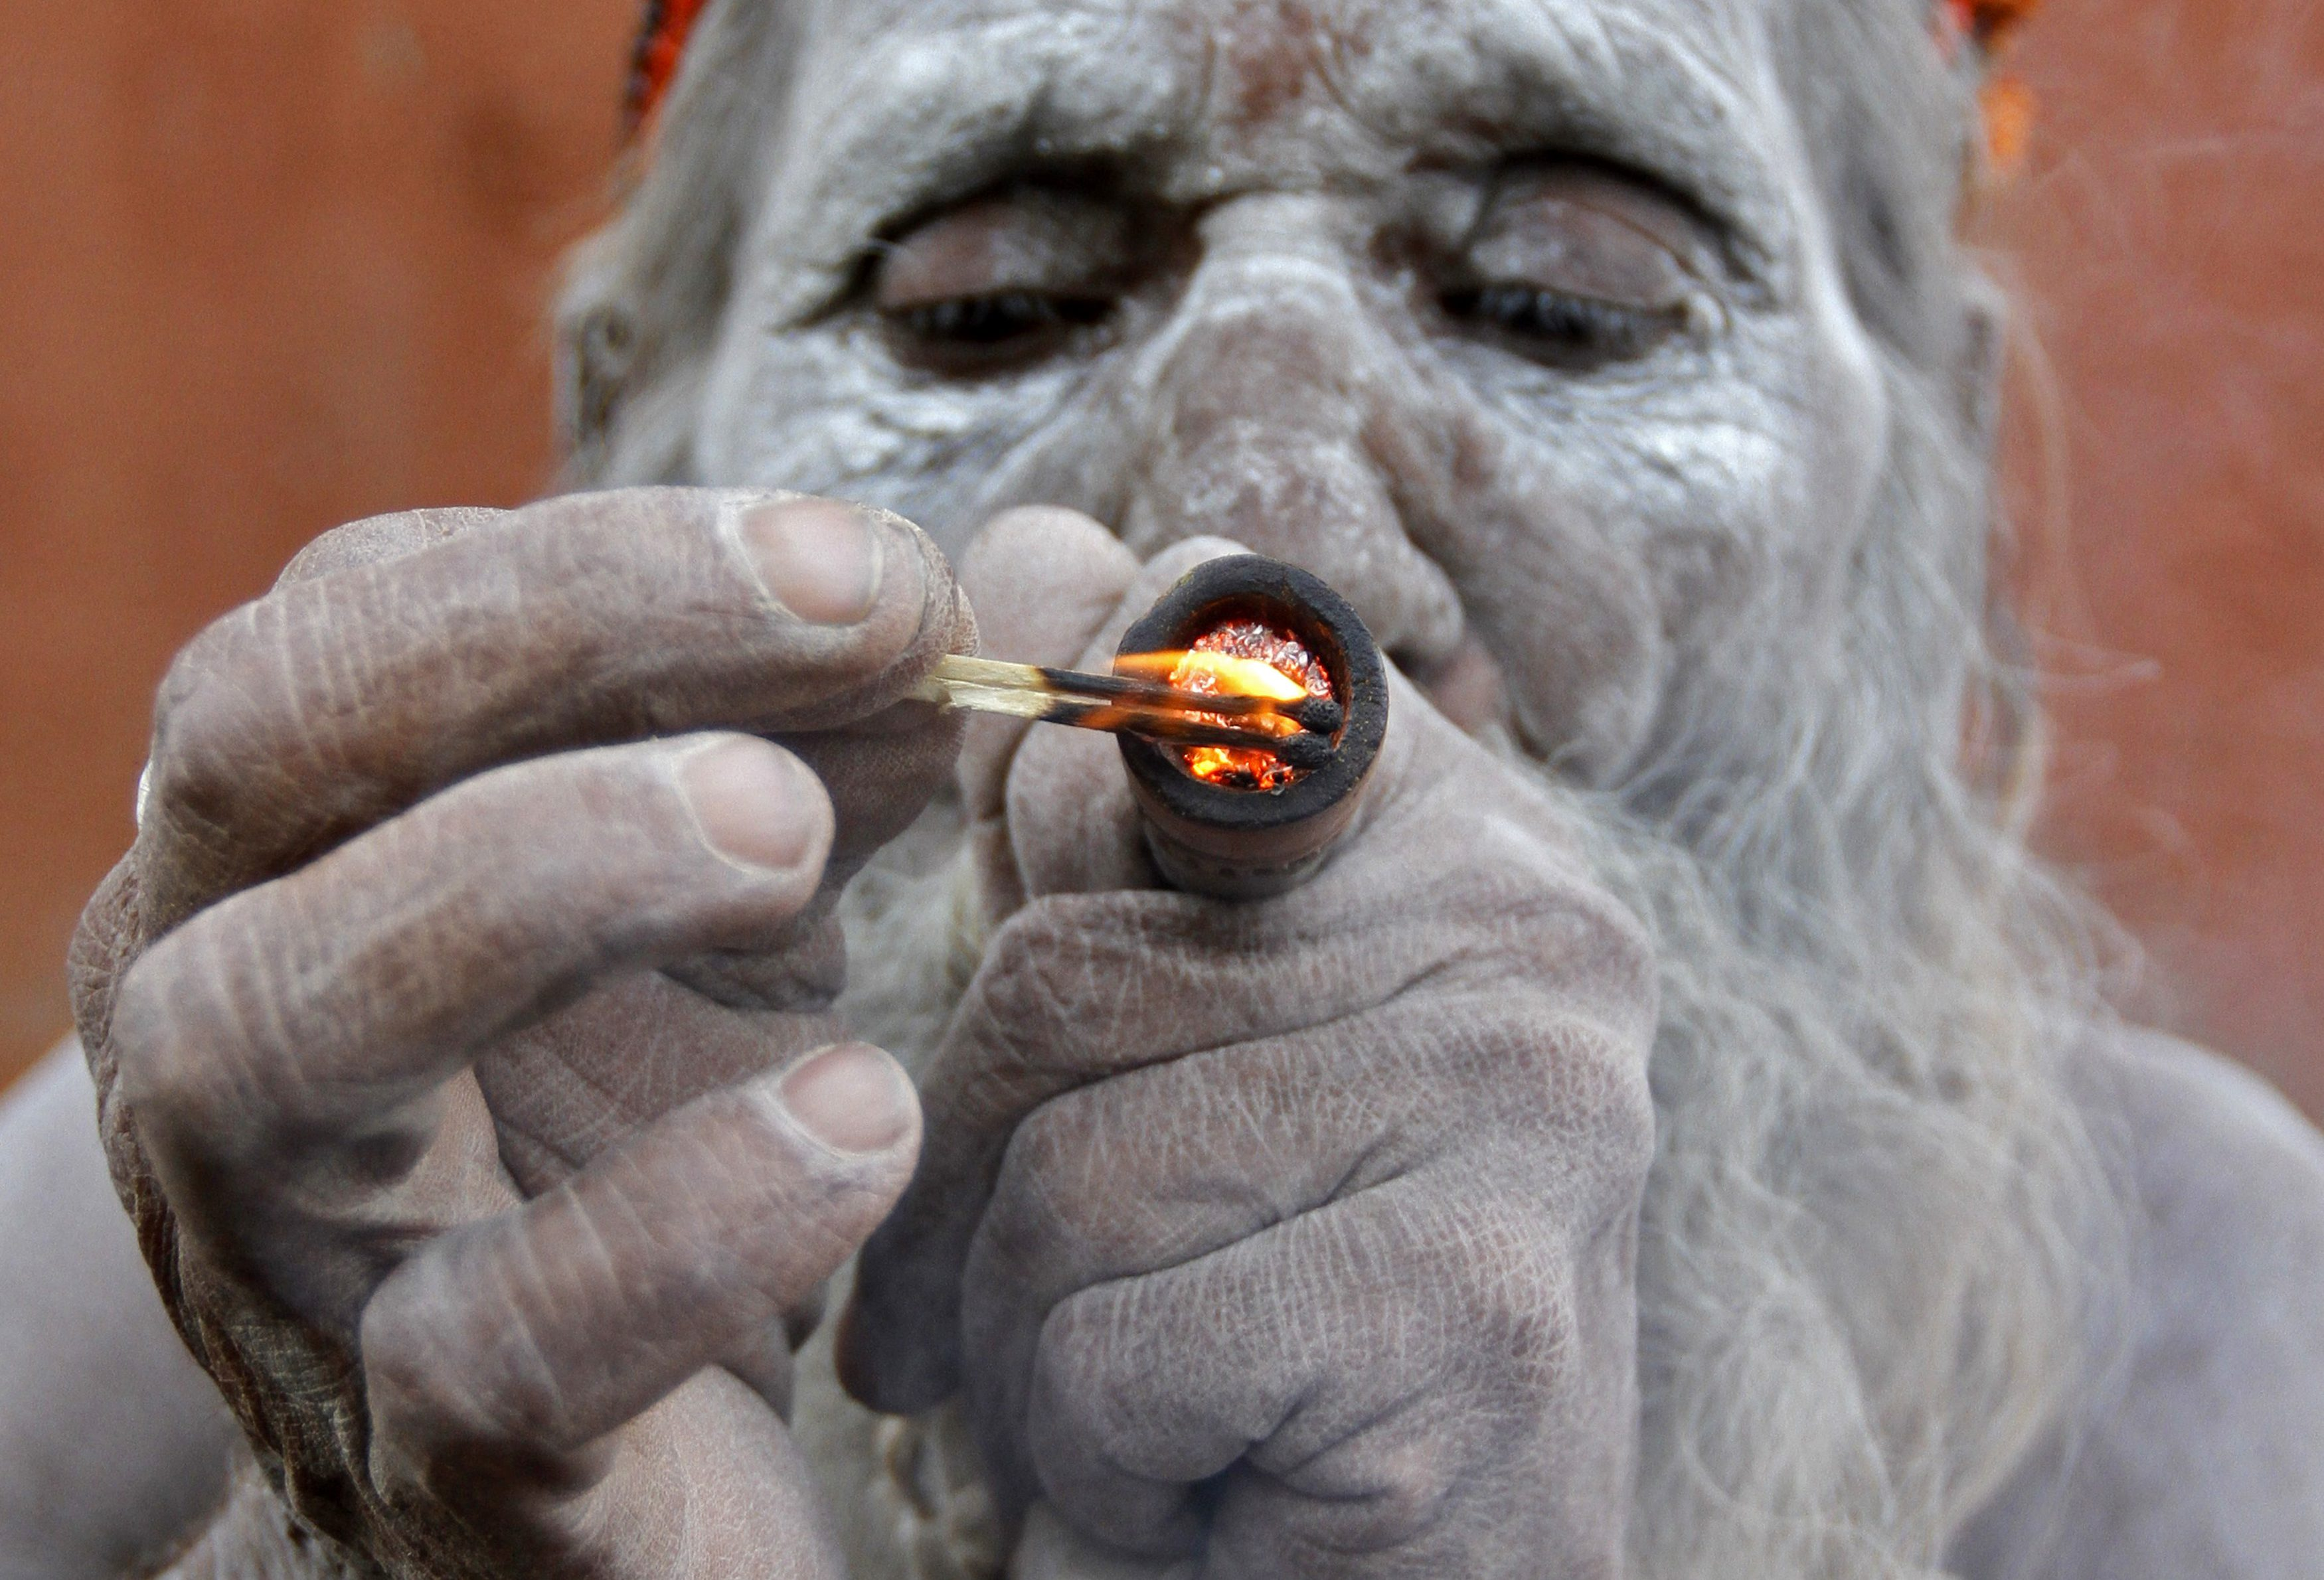 Delhi, Mumbai among world's biggest consumers of weed